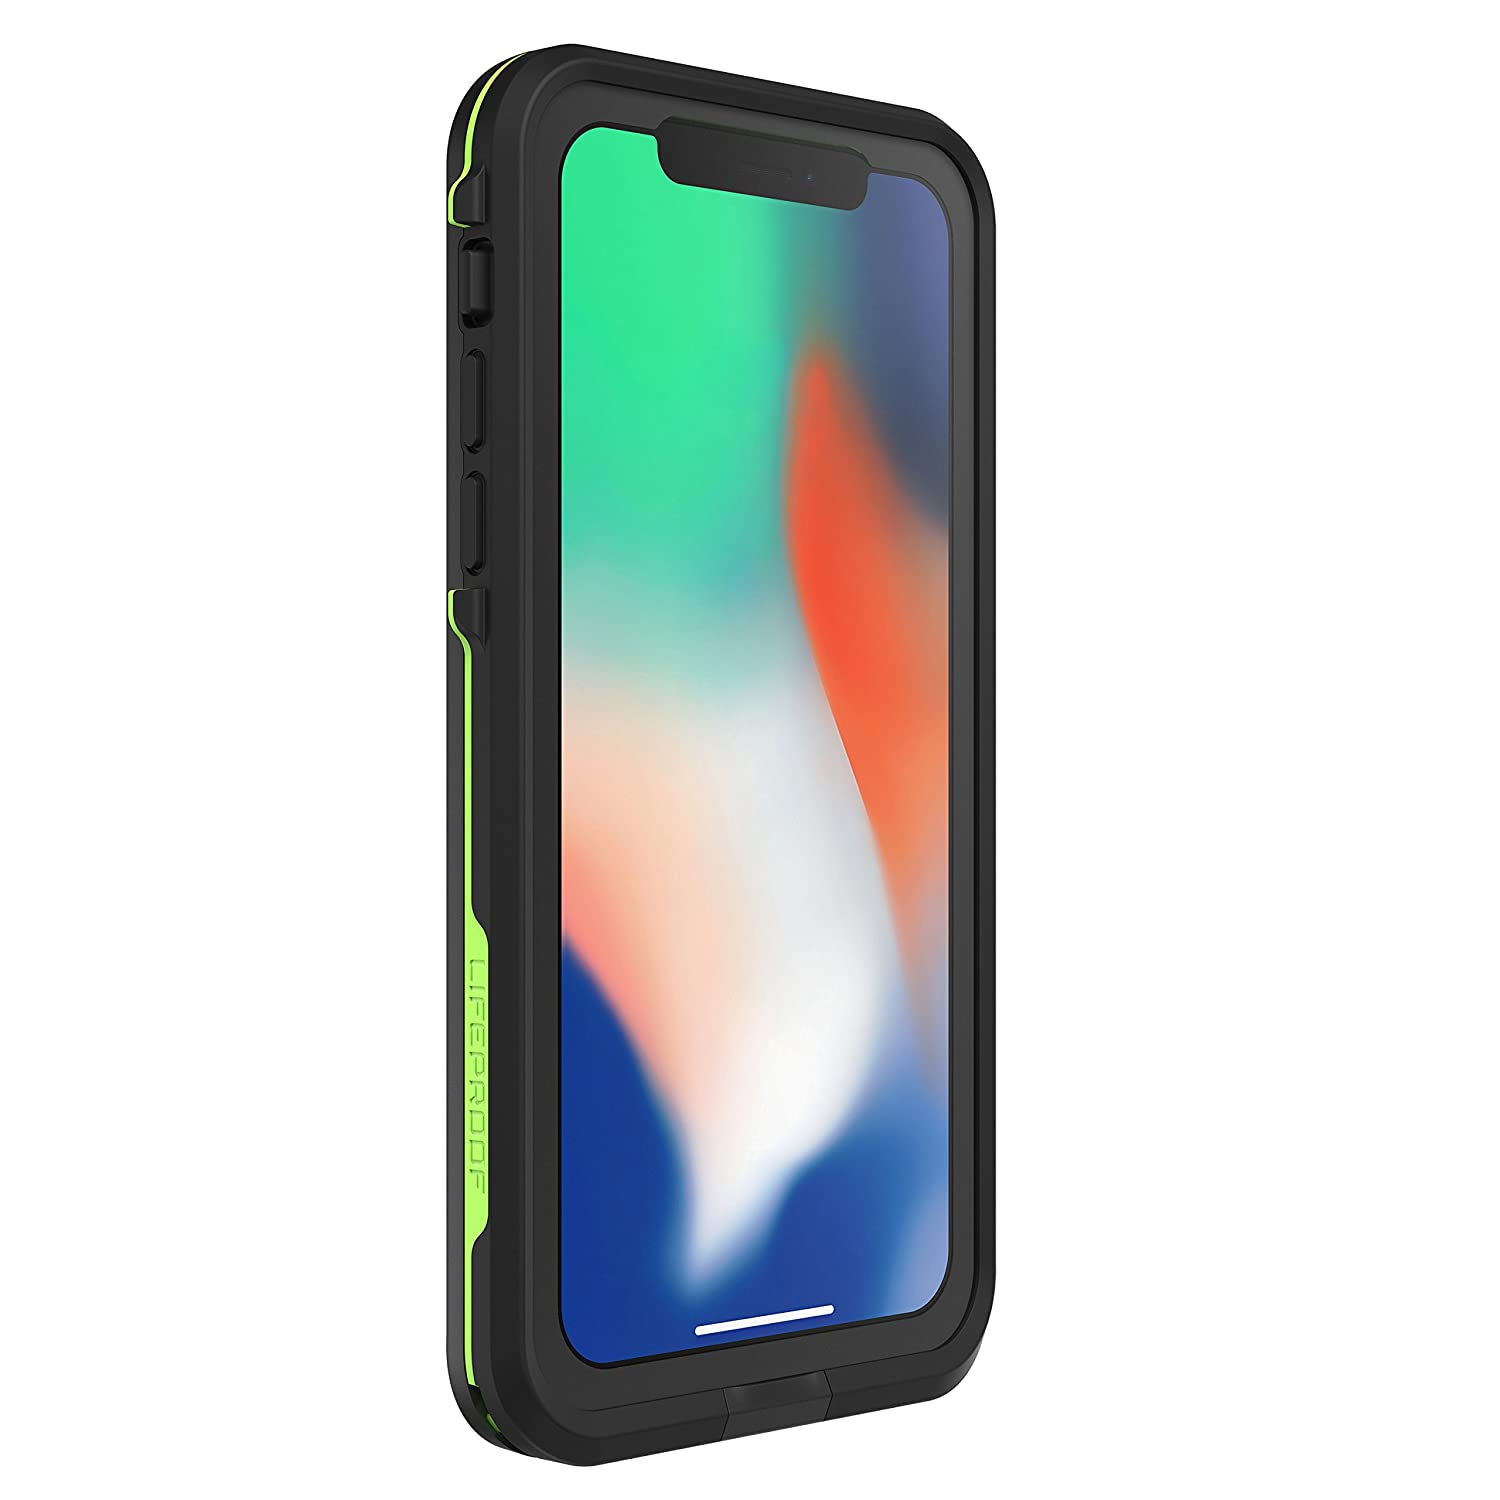 fd66e758e5e Lifeproof FRÉS SERIES funda impermeable para iPhone X (solamente) -  Empaquetado al por menor, NIGHT LITE (BLACK/LIME): Amazon.com.mx:  Electrónicos